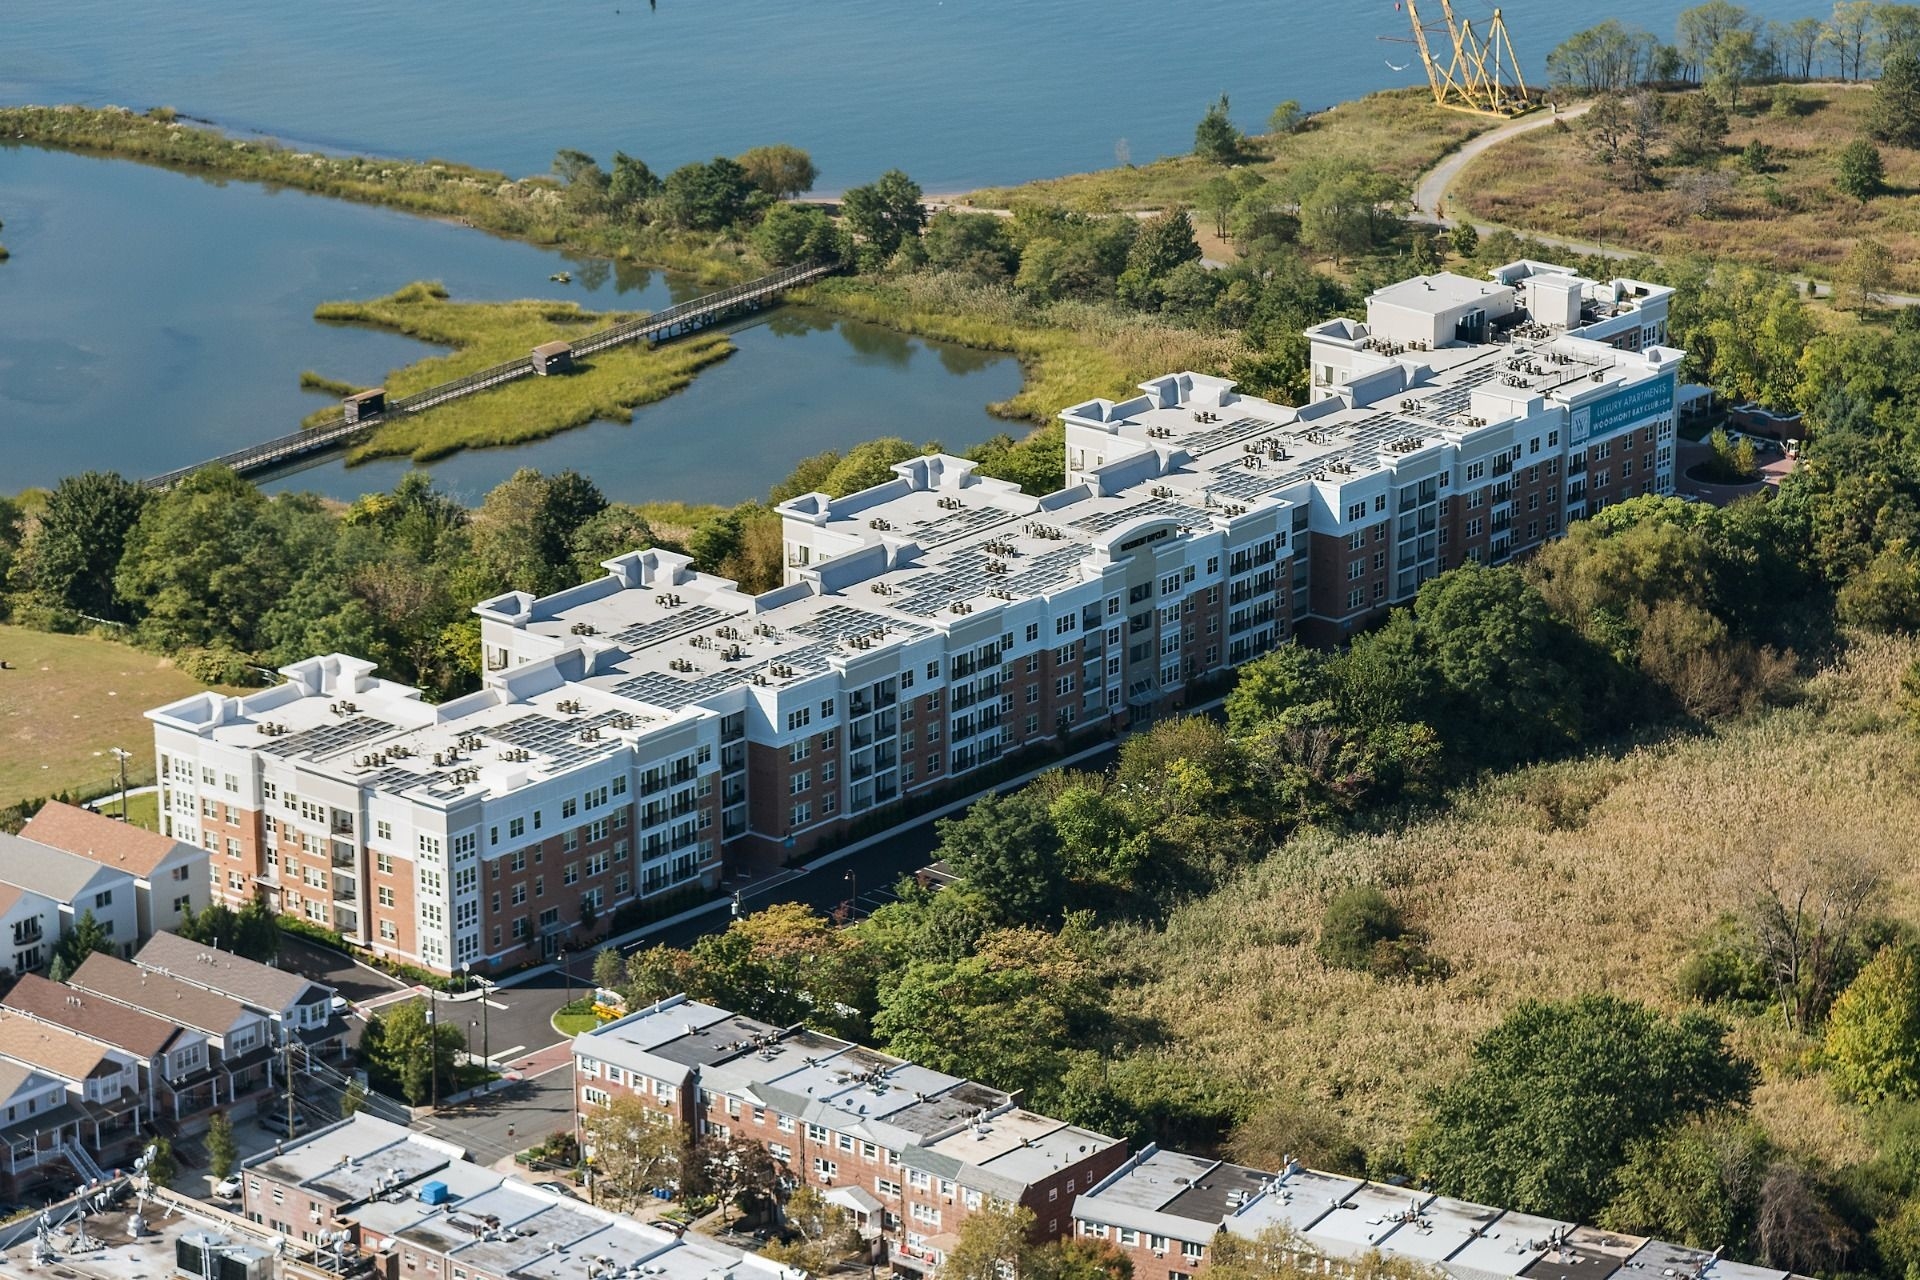 Outdoor aerial image of apartment complex